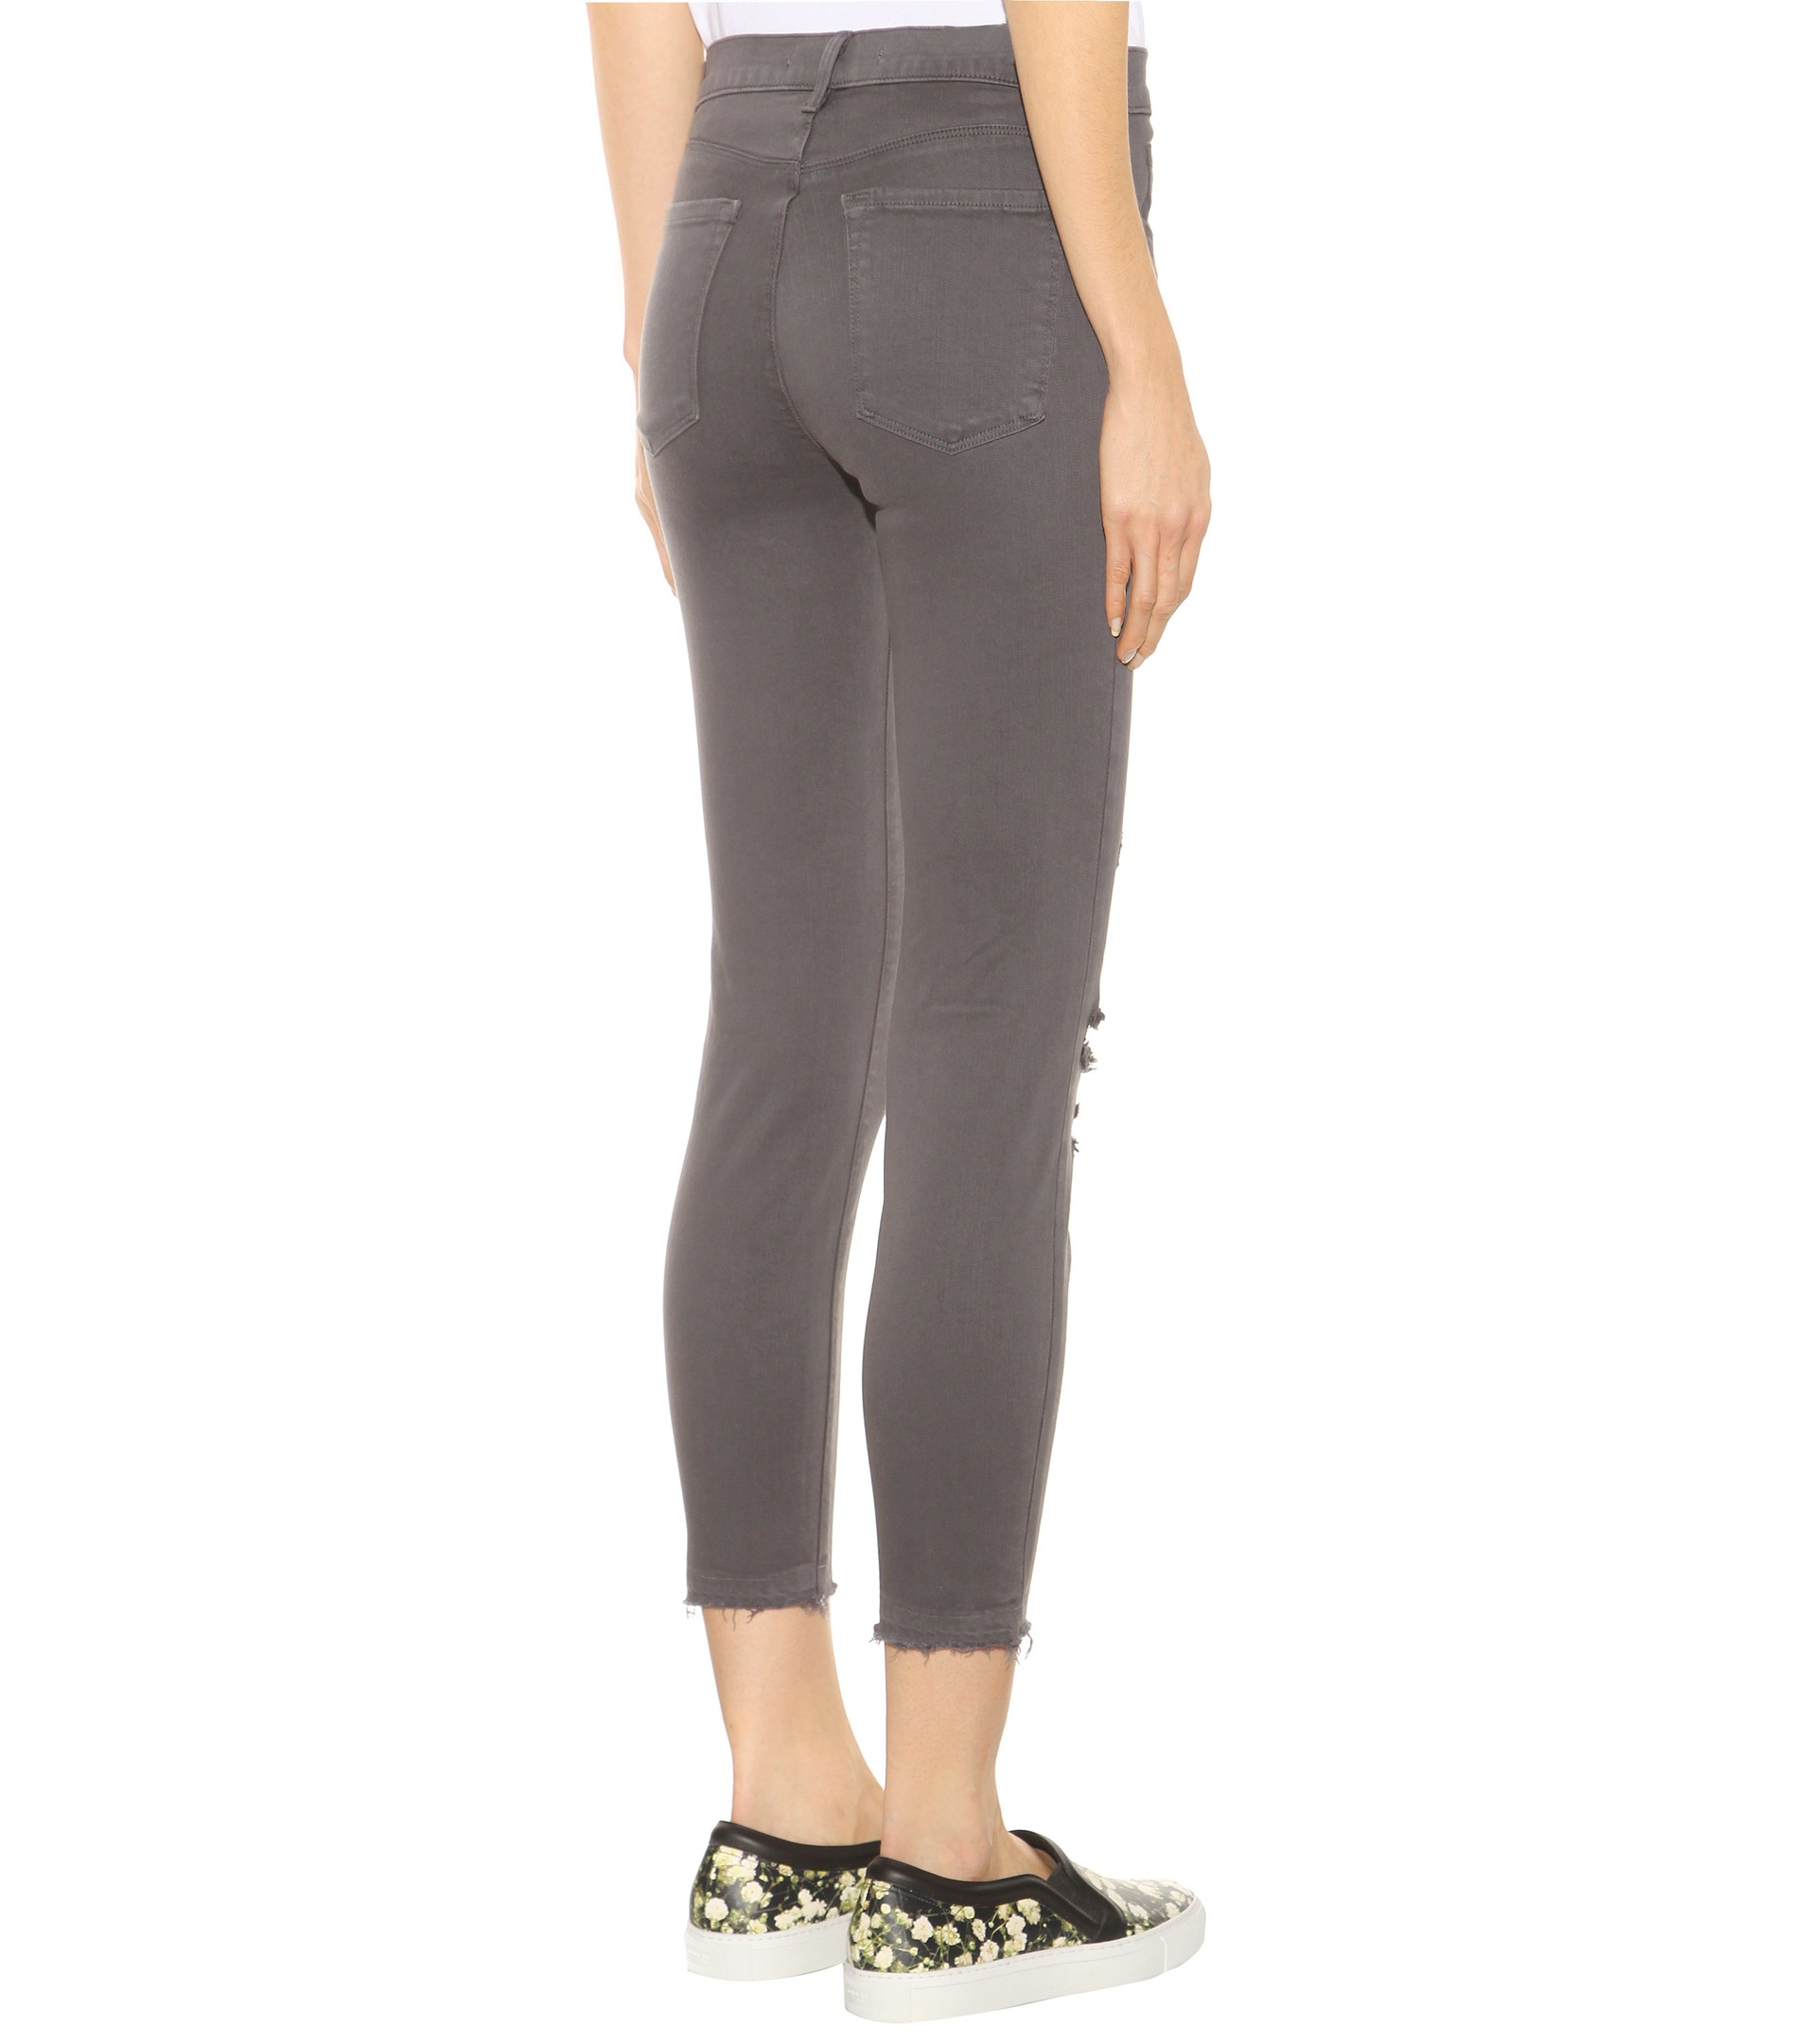 J brand Cropped Low Rise Distressed Skinny Jeans in Gray | Lyst